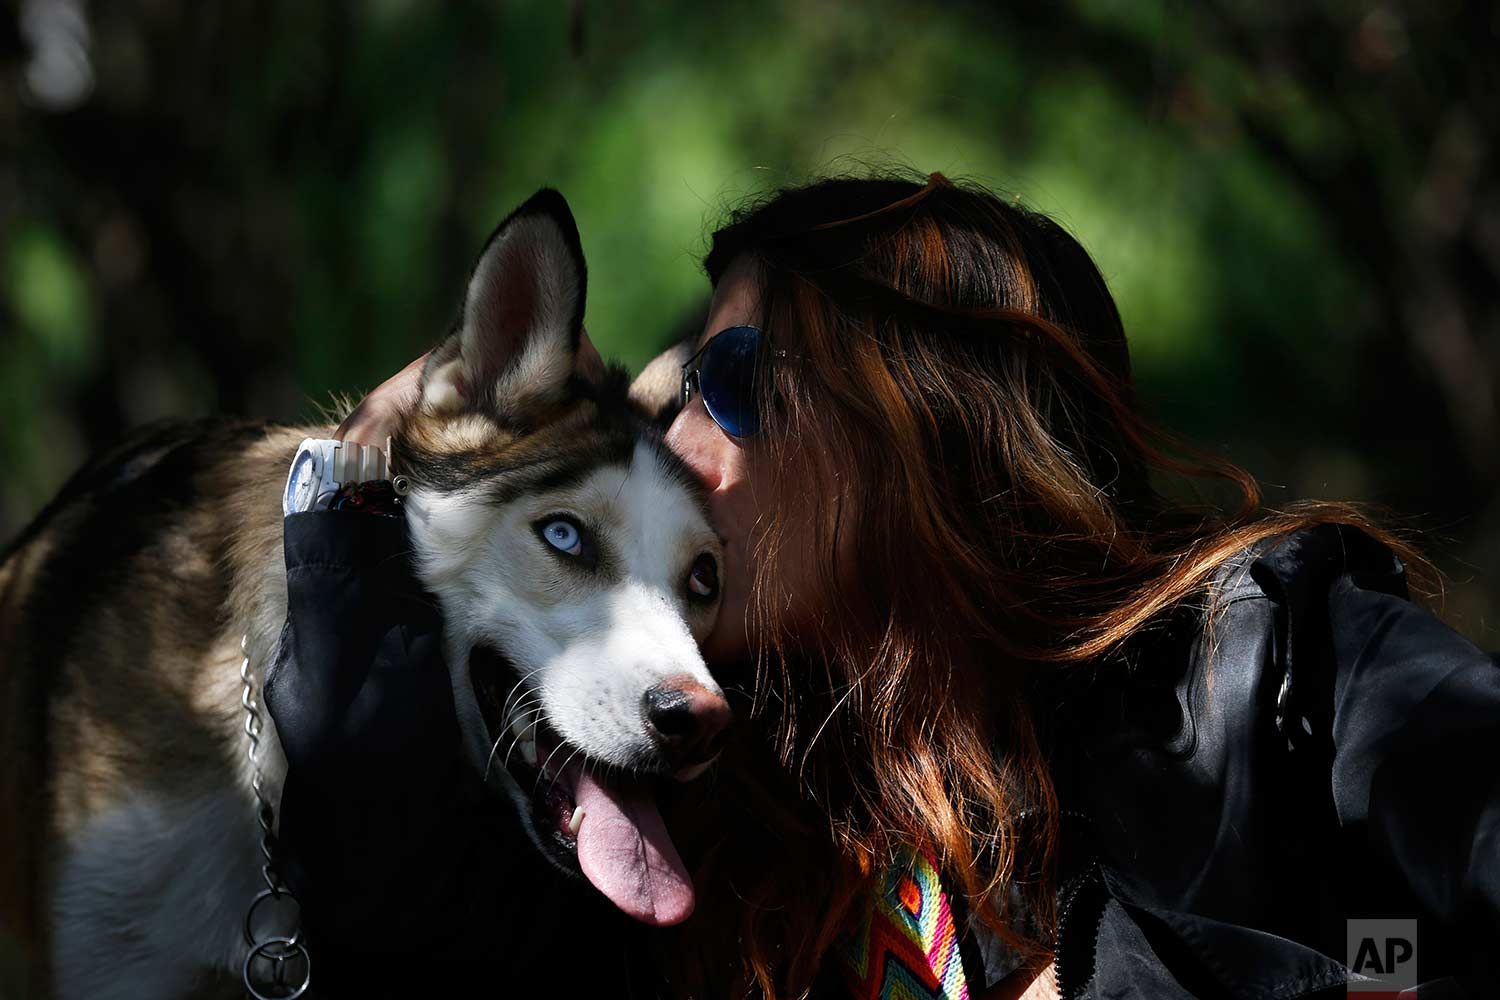 In this Wednesday, Dec. 24, 2017 photo, Mariam Gutierrez de Velasco nuzzles with her dog Ash during a trip to Chapultepec forest in Mexico City. Mariam loves her dogs so much that she considers them her children. (AP Photo/Marco Ugarte)